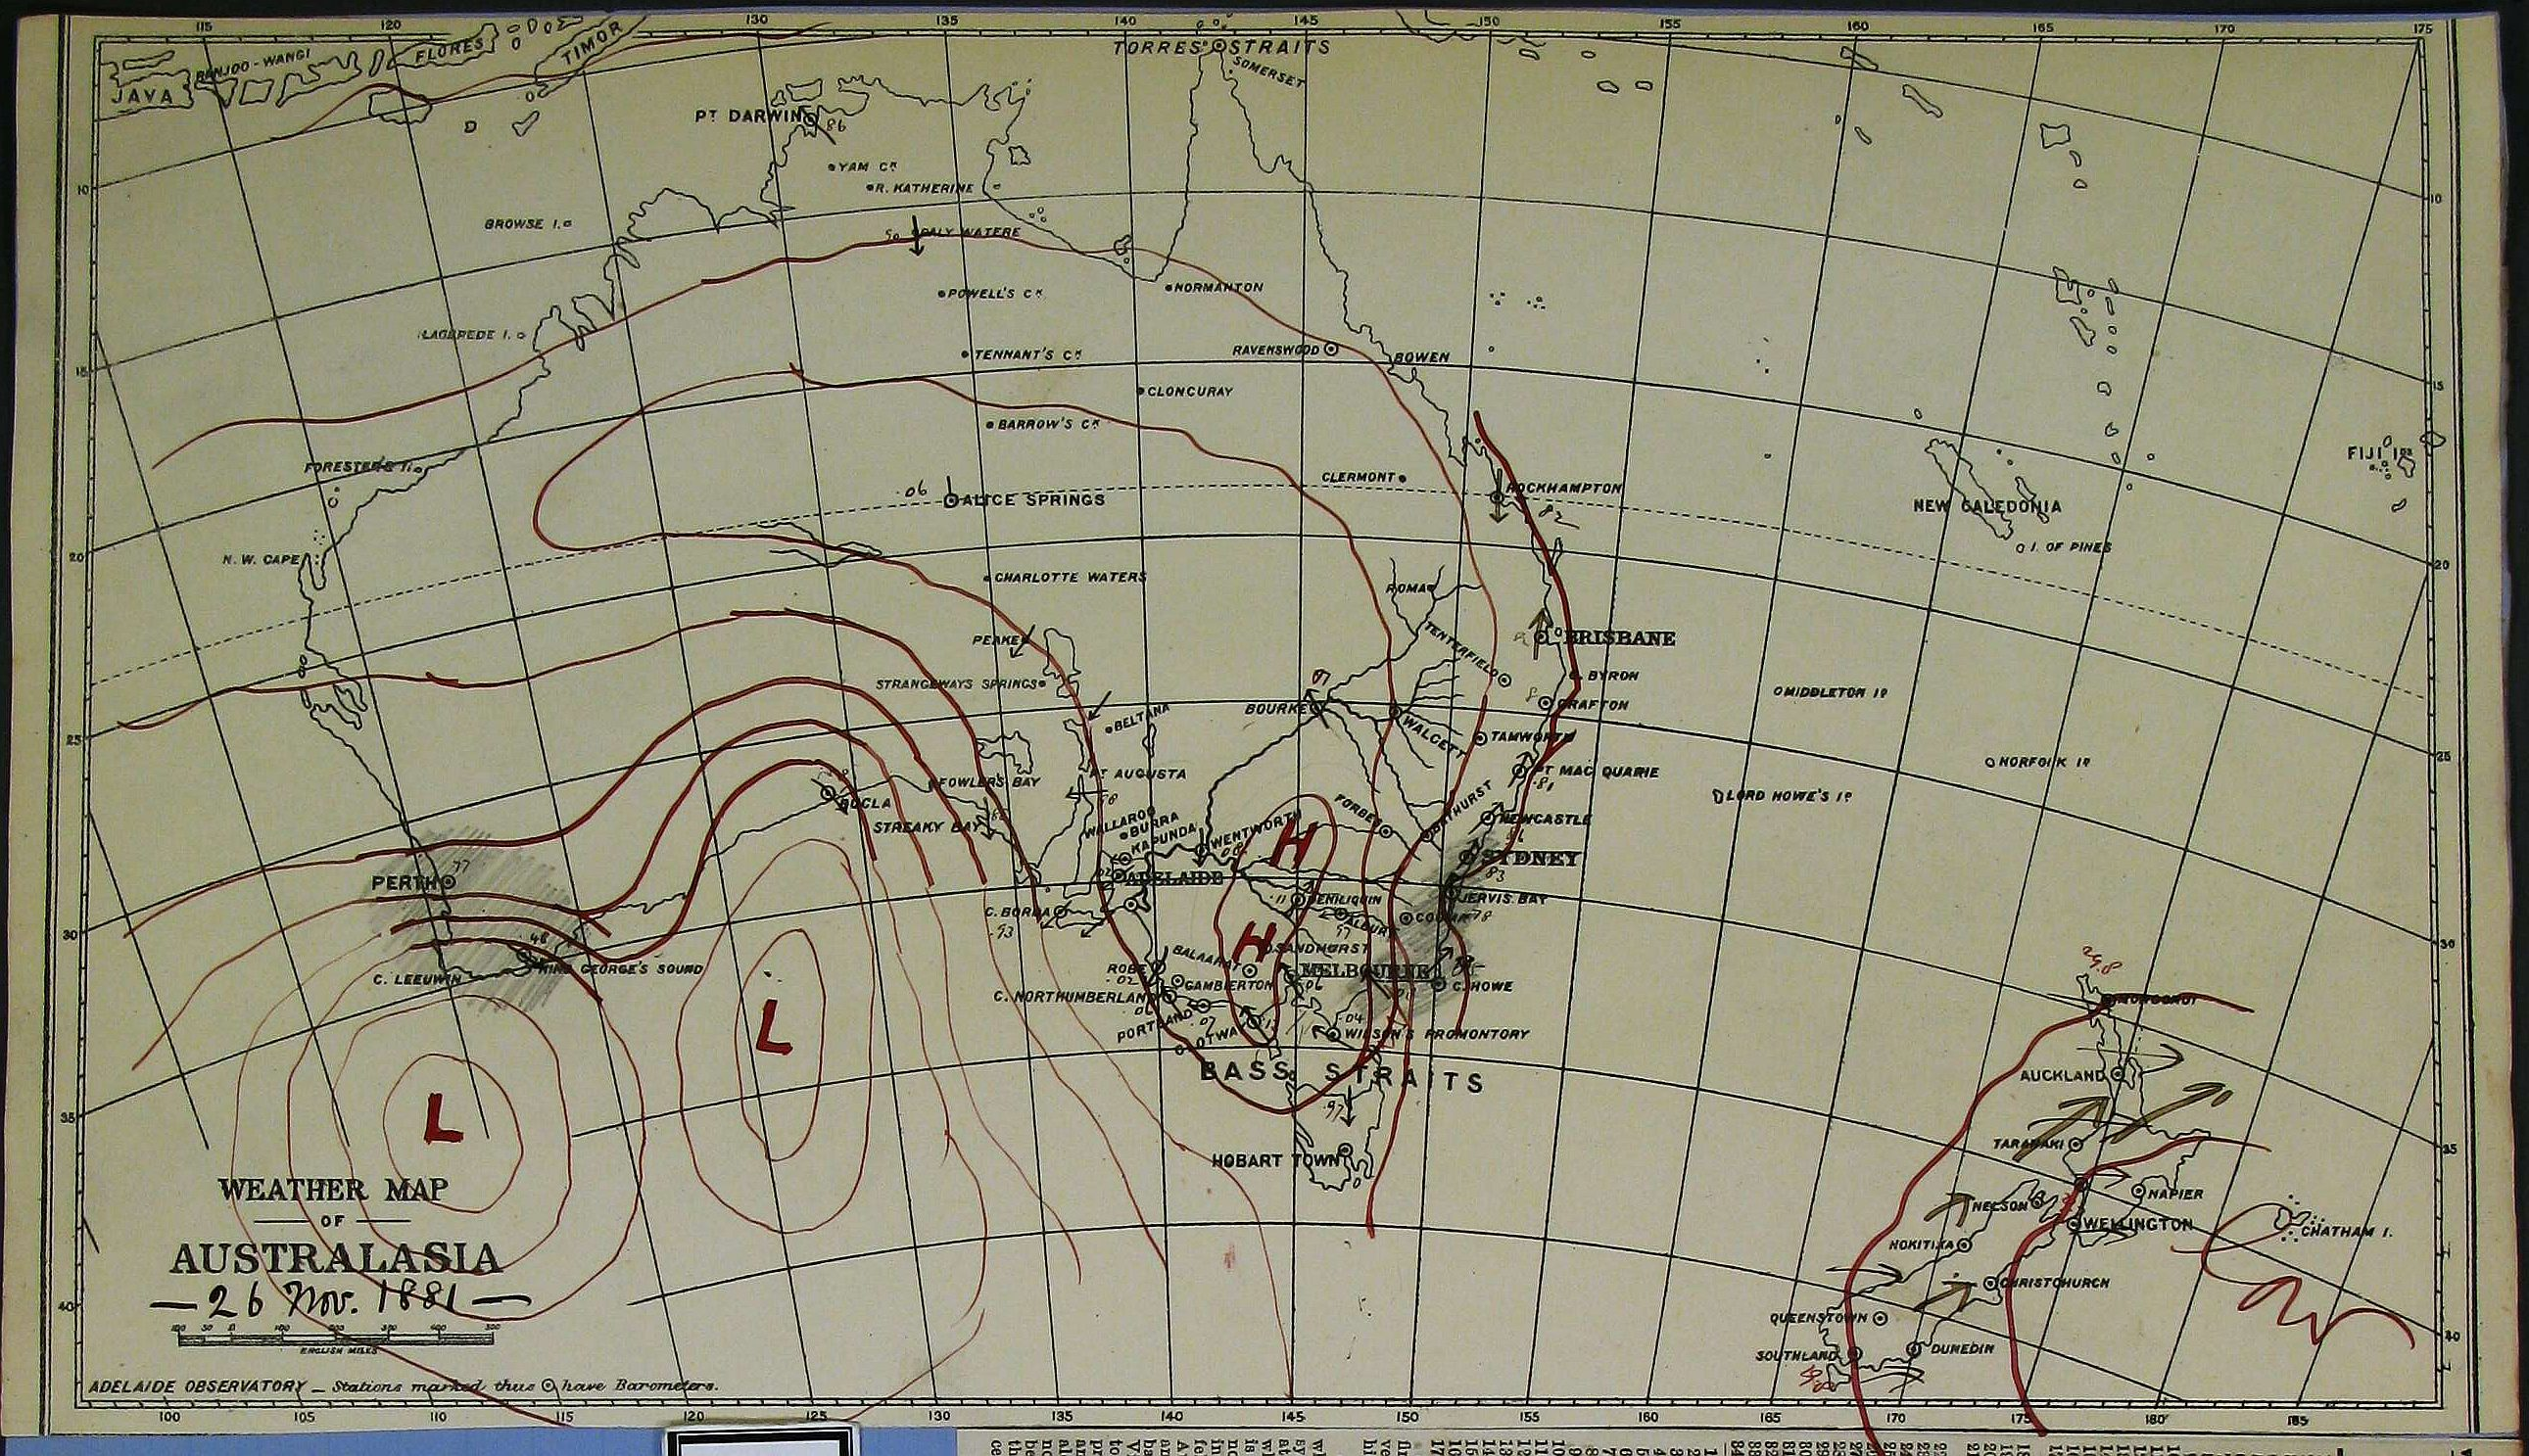 18811126c0900 Weather map